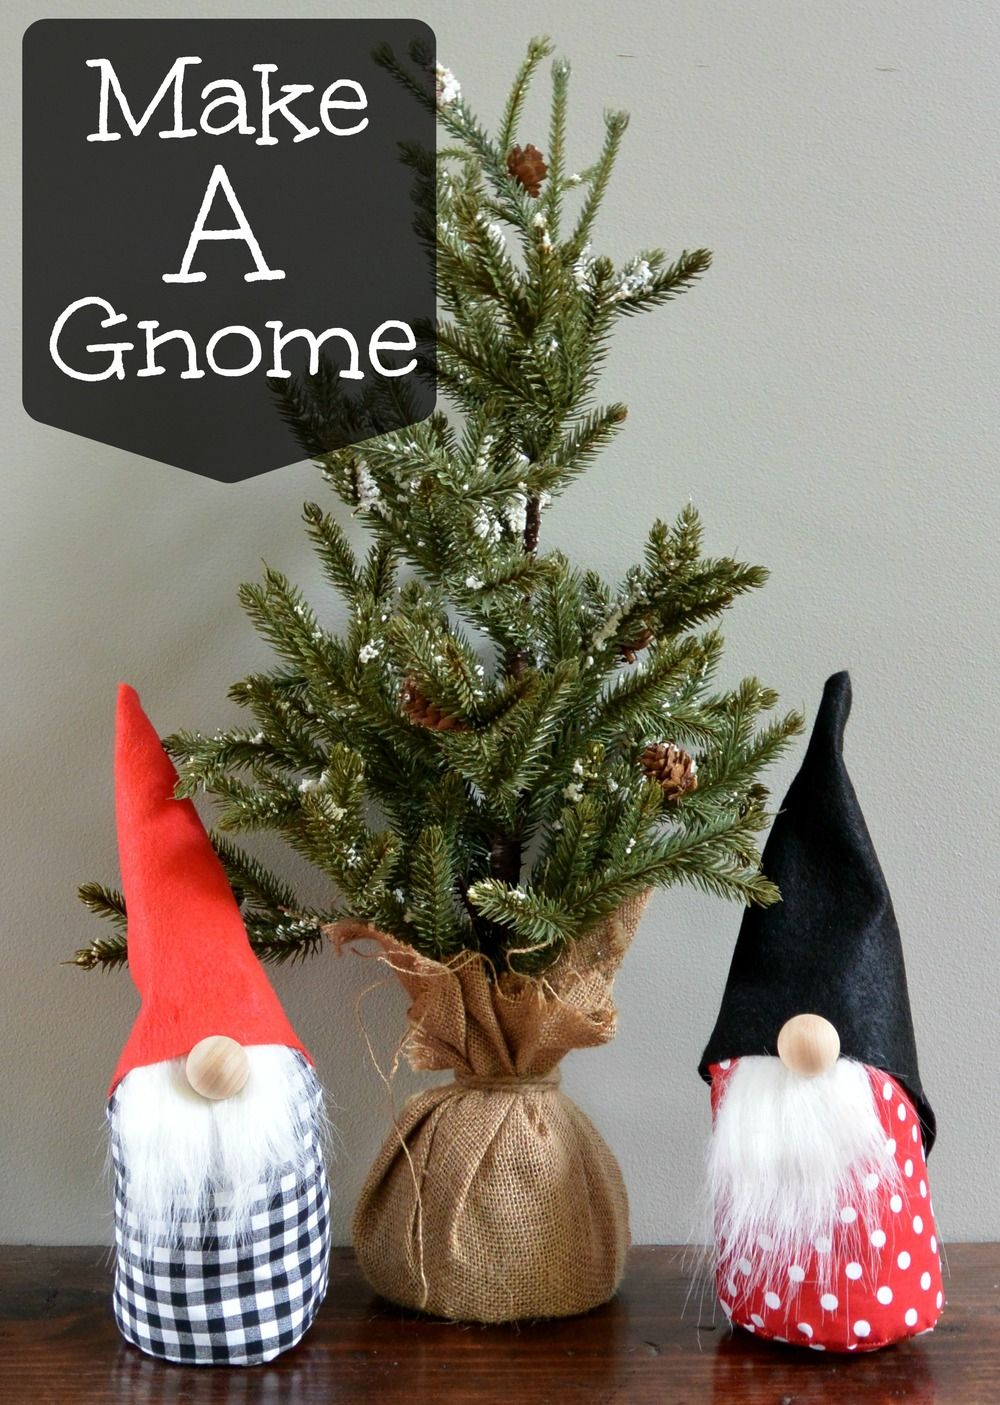 How to sew a christmas decoration - Learn How To Make A Gnome Just In Time For The Holidays Christmas Crafts Sewingchristmas Decorations